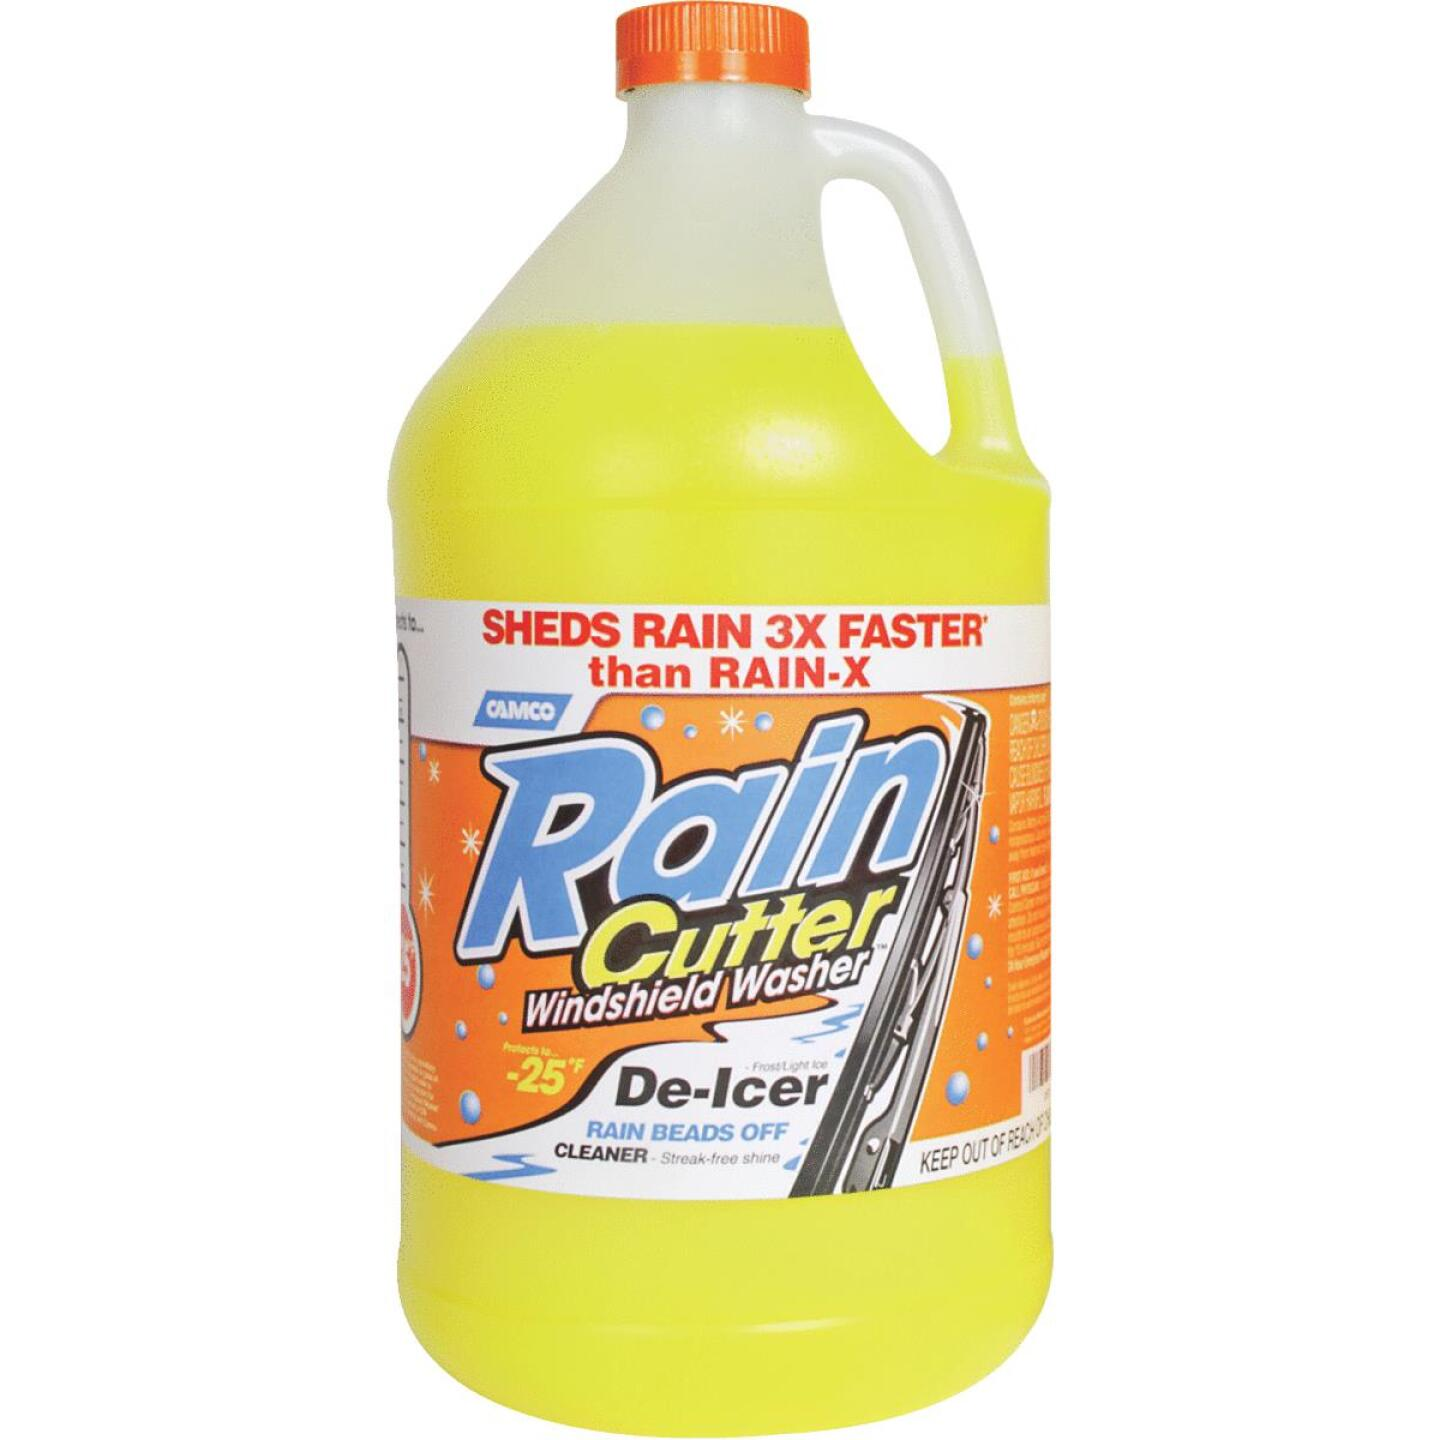 Rain Cutter 1 Gal. -25 Deg F Temperature Rating Windshield Washer Fluid with De-Icer Image 1